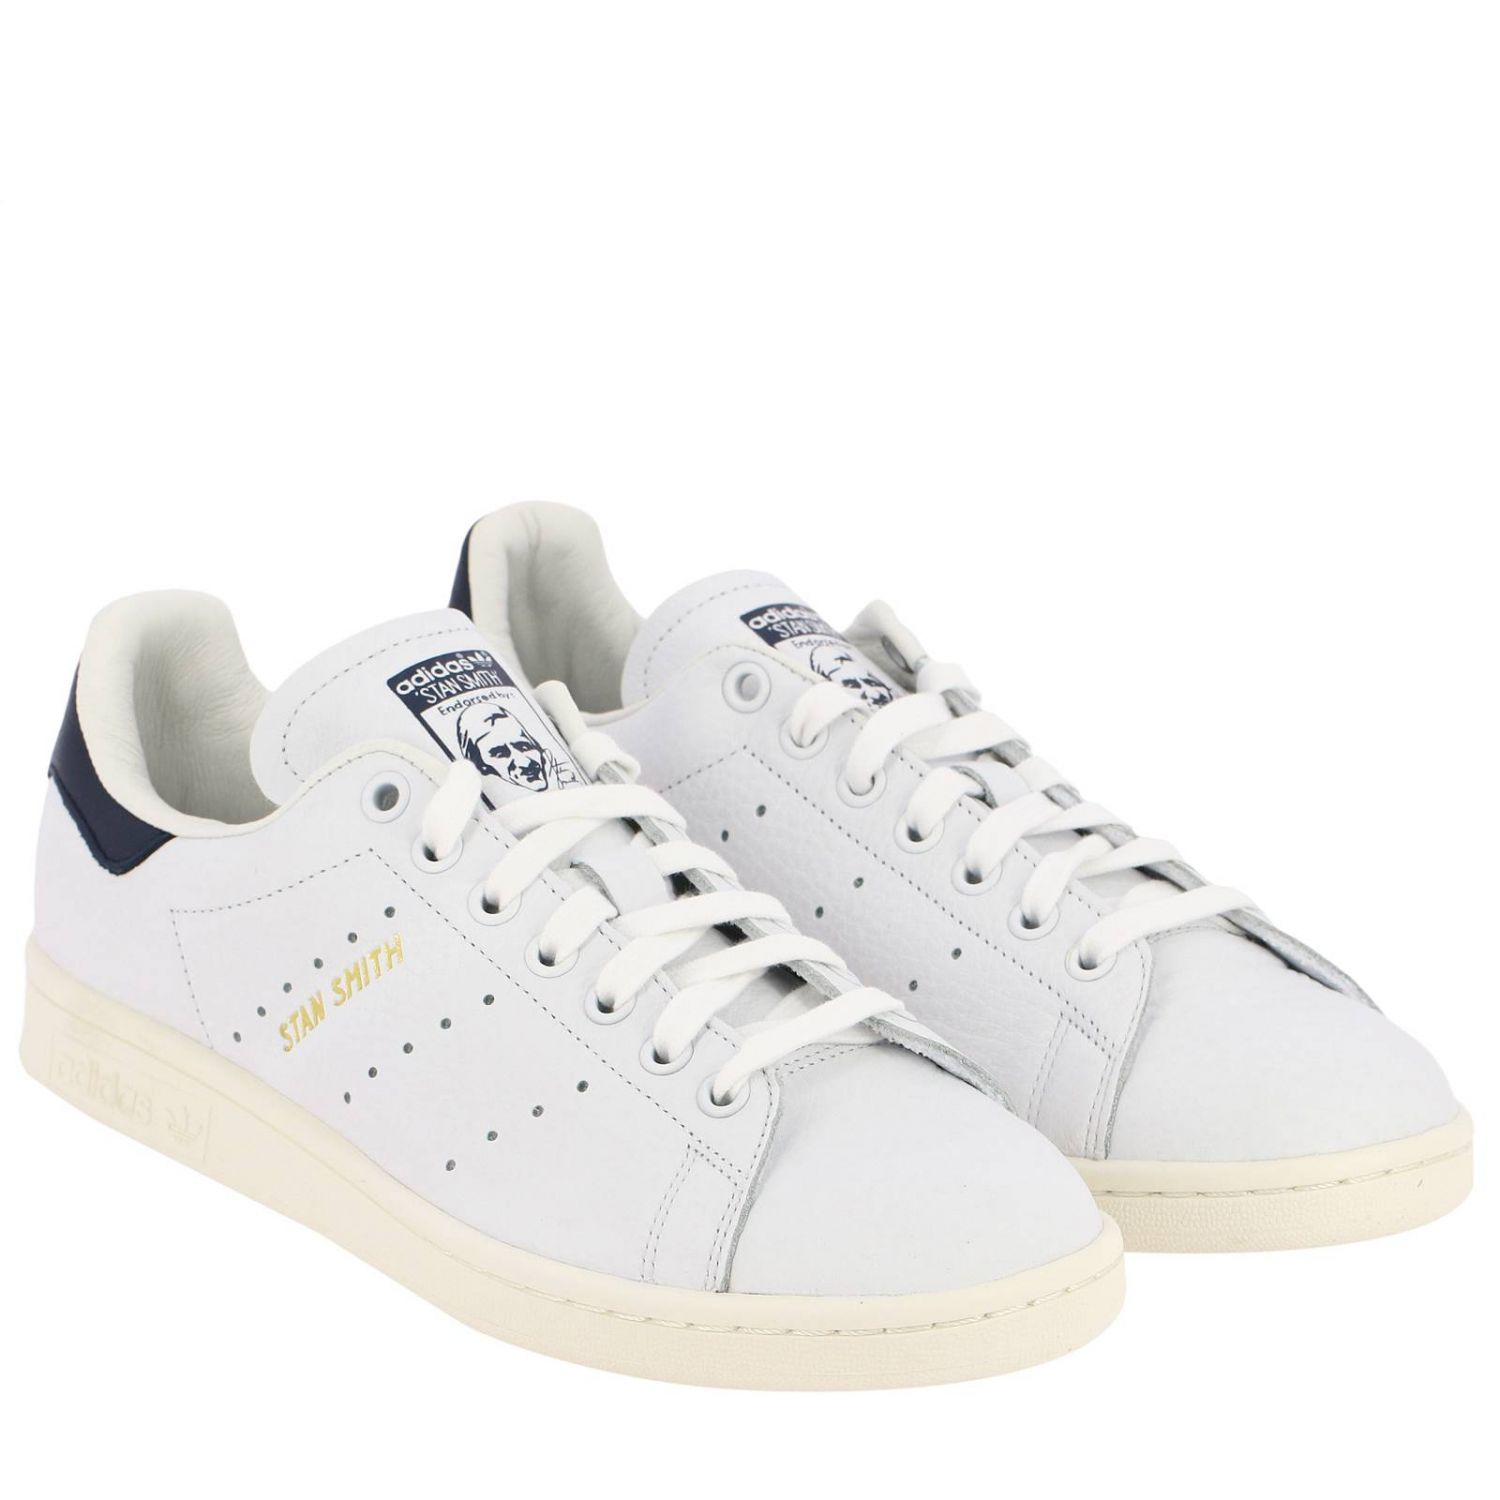 运动鞋 Adidas Originals: Adidas Originals Stan Smith 真皮运动鞋 白色 2